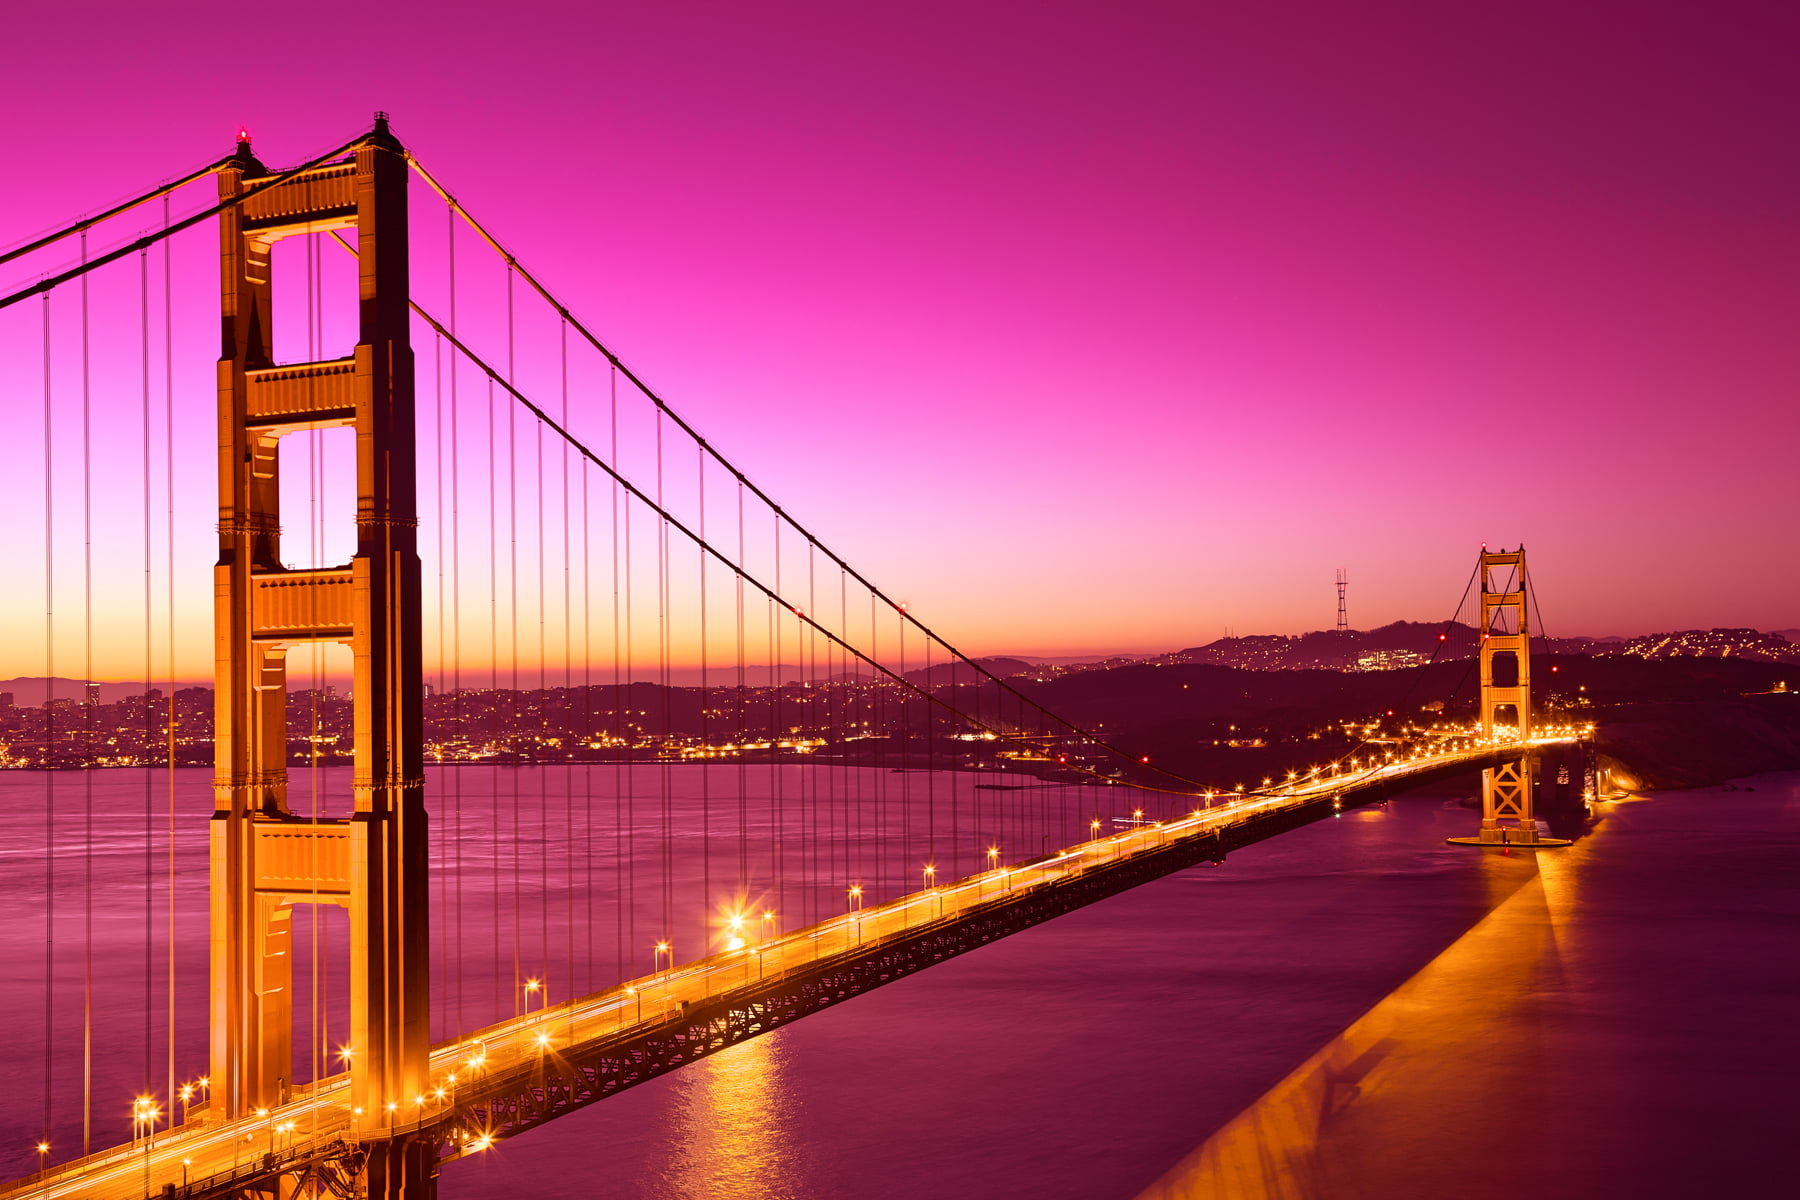 Golden Gate Bridge during golden hour HD wallpaper | Wallpaper Flare